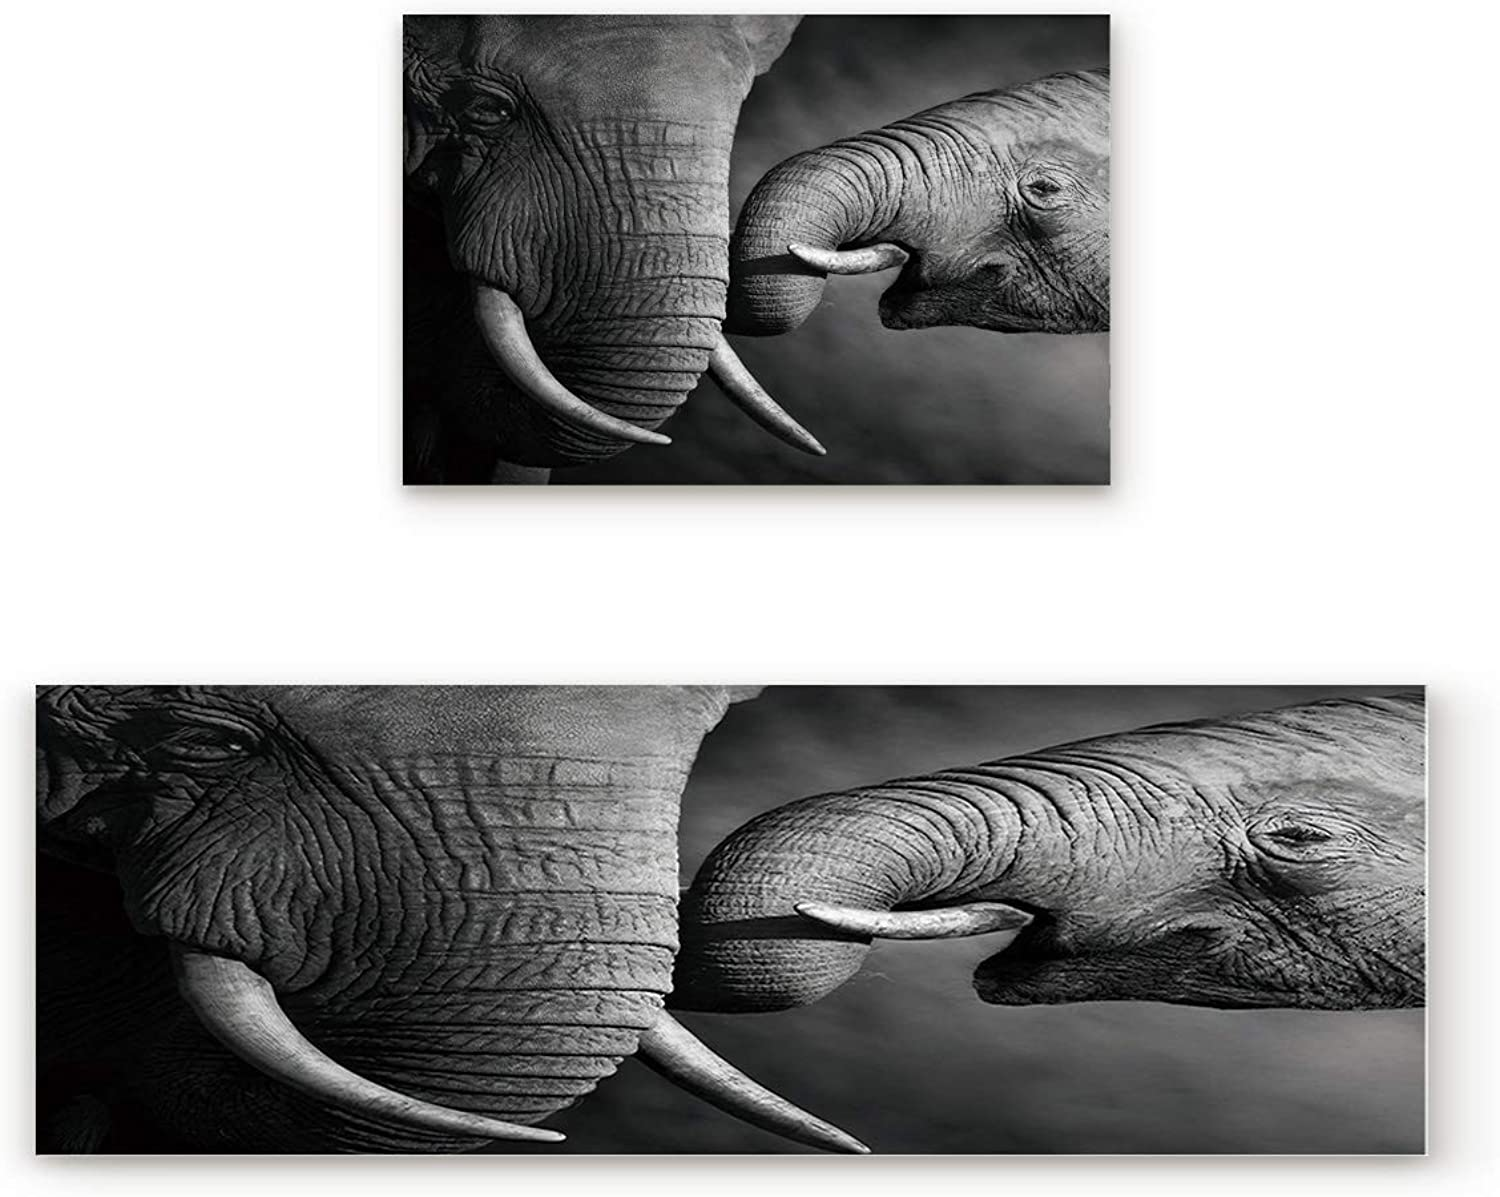 KAROLA 2 Piece Non-Slip Kitchen Mat Doormat Runner Rug Set Thin Low Pile Indoor Area Rugs Mother and Baby Elephant Family 19.7 x31.5 +19.7 x63